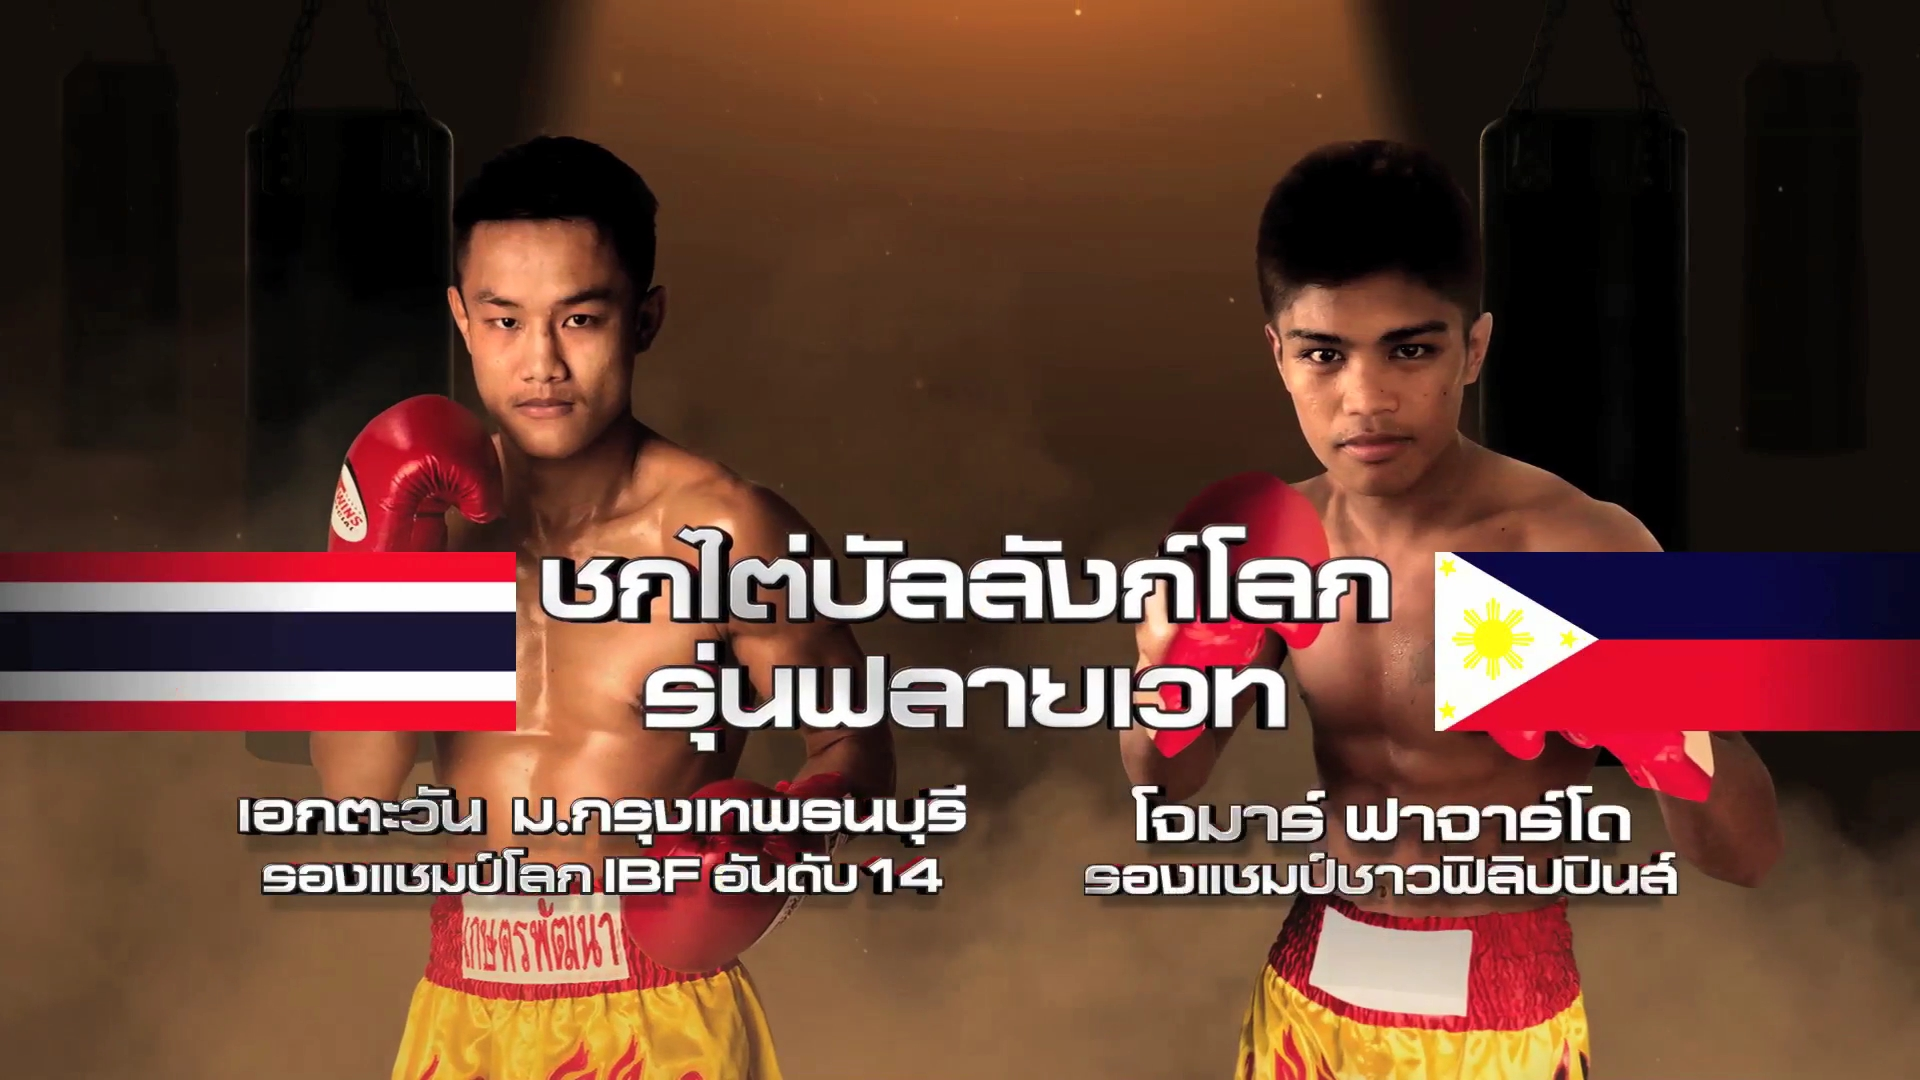 2CH_Promo_On581015(THU)_MonoBoxingSukDuangKhamPanTaiBanLangLoke_0030.mp4_000015457